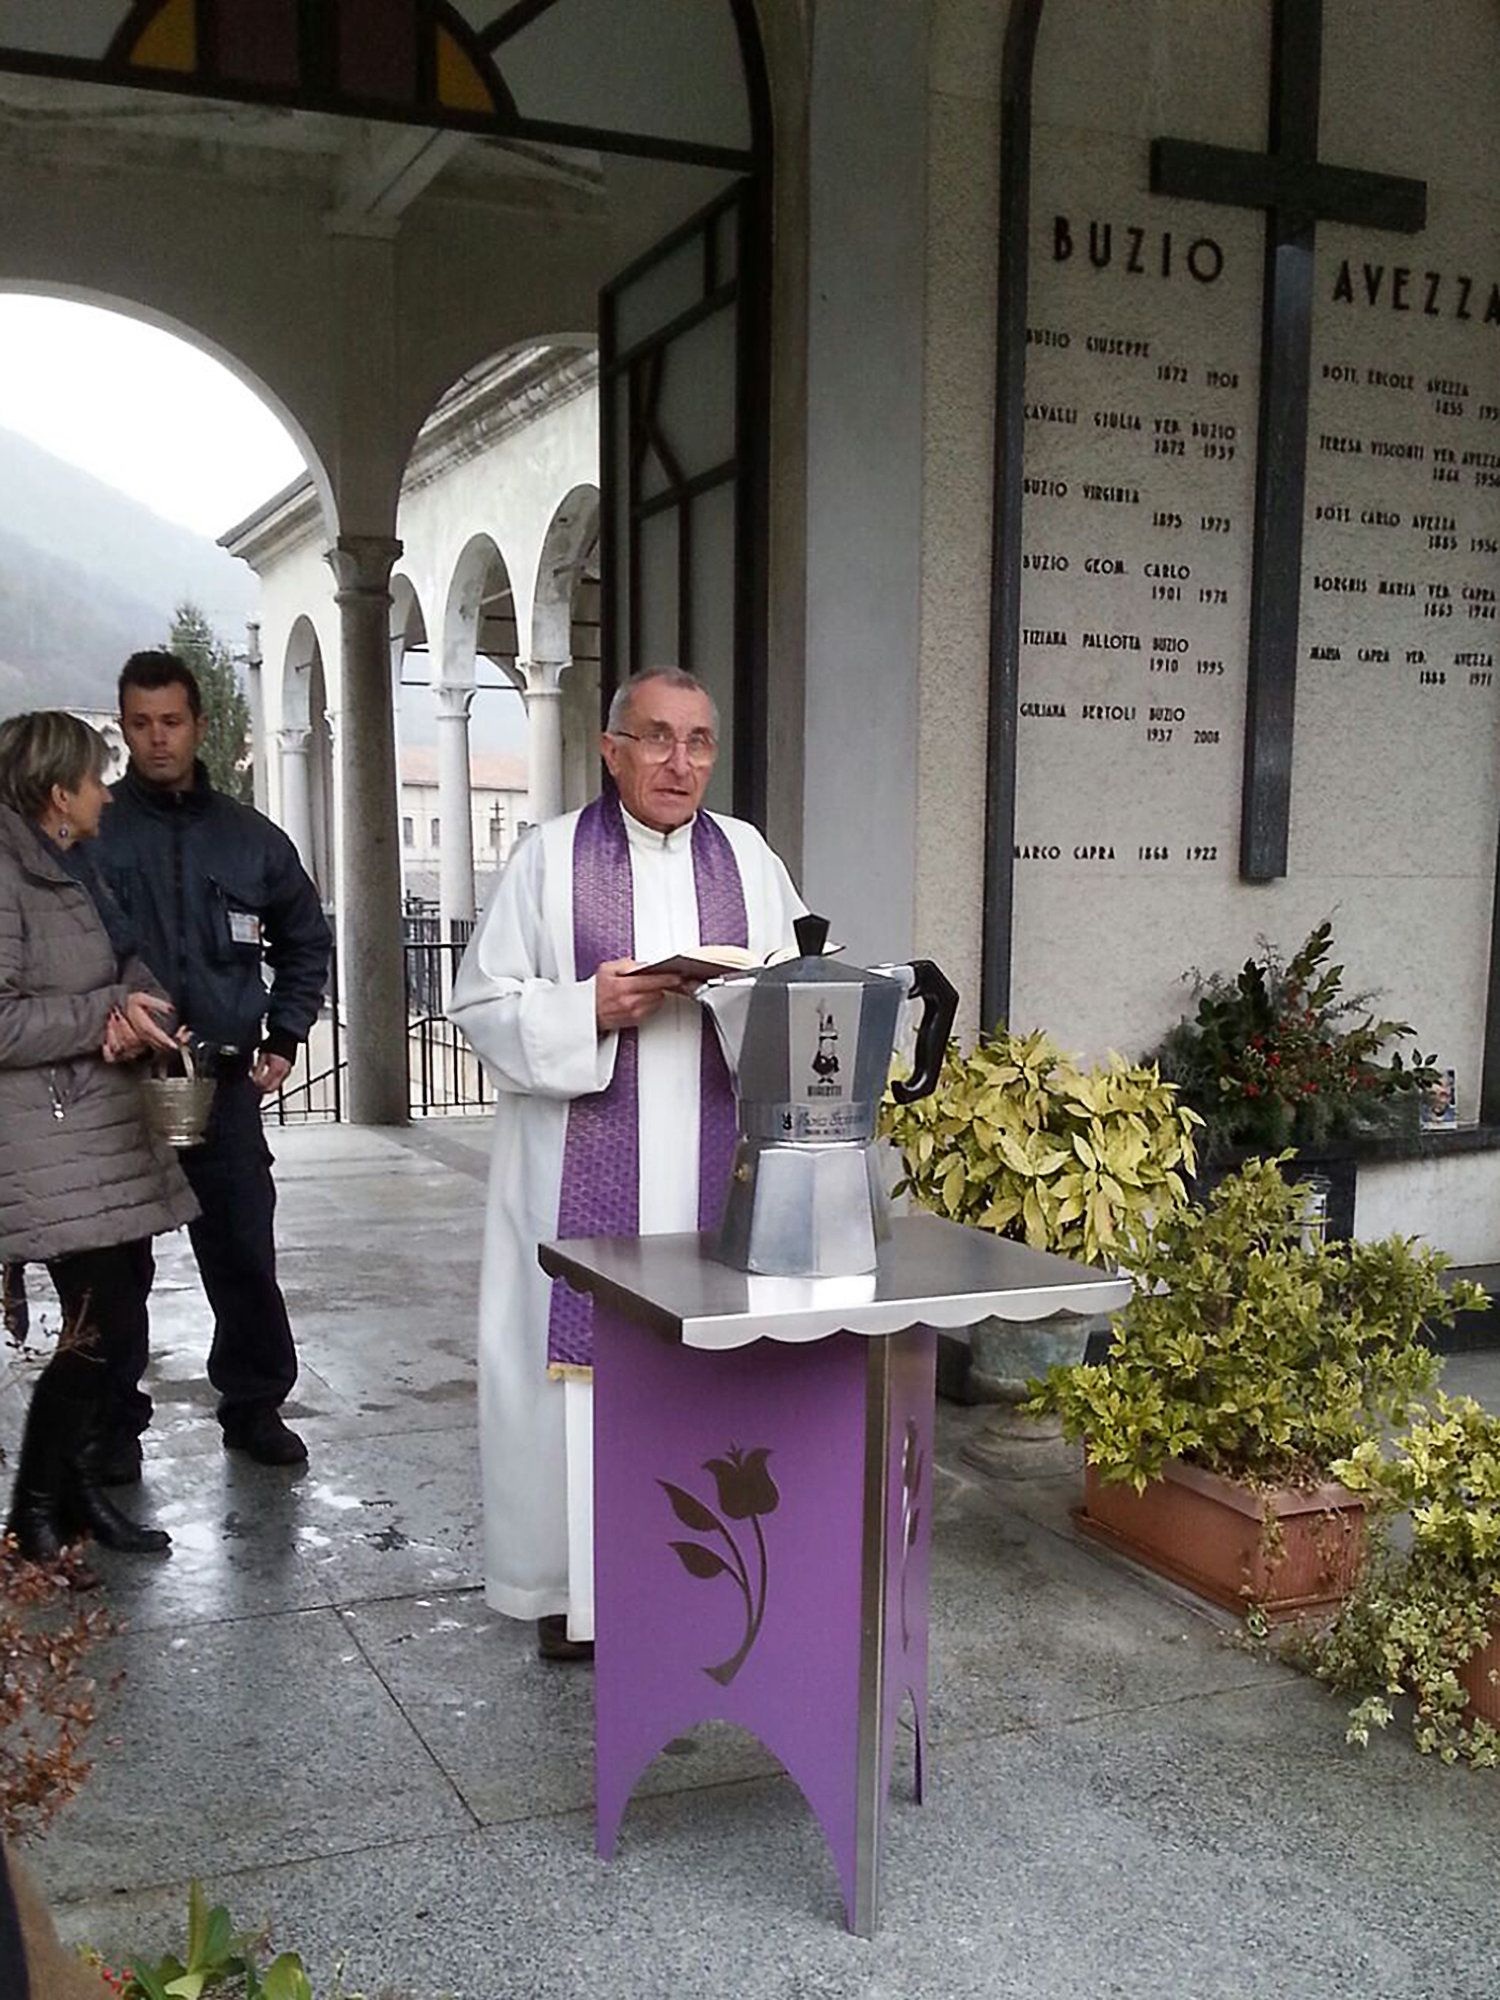 In this photo made available Wednesday, Feb. 17, 2016, father Pietro Segato, the parish priest of Casale Corte Cerro, stands in front of a Moka pot containing the ashes of Renato Bialetti, during his burial service in the cemetery of Omegna, Northern Italy, Tuesday, Feb. 16, 2016. Renato Bialetti had expressed his wish to be cremated and then buried in the Moka his father Alfonso invented in 1933. Although he was not the inventor, Renato was responsible for the extensive marketing campaign that made the Moka an icon of Italian design, exposed in museums such as the Museum Of Modern Art and many others all over the world. (AP Photo/Elisa Sola)